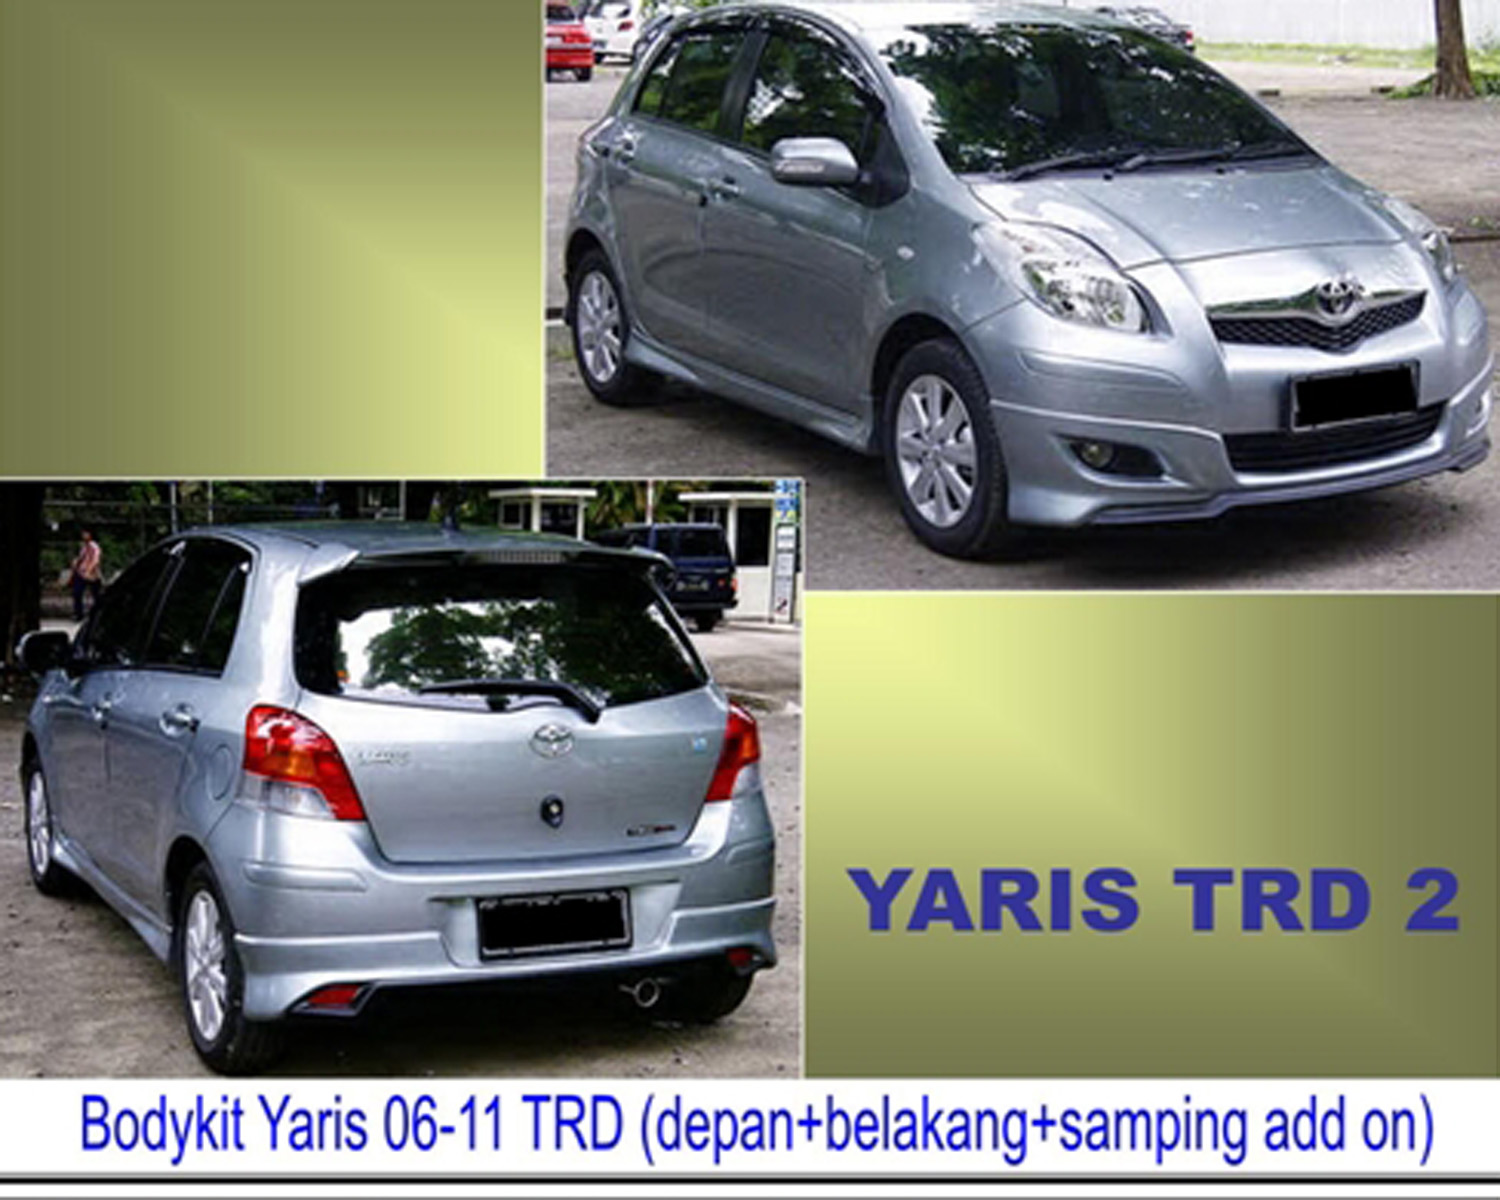 all new yaris trd pilih grand avanza atau veloz download 86 body kit mobil terupdate modispik motor